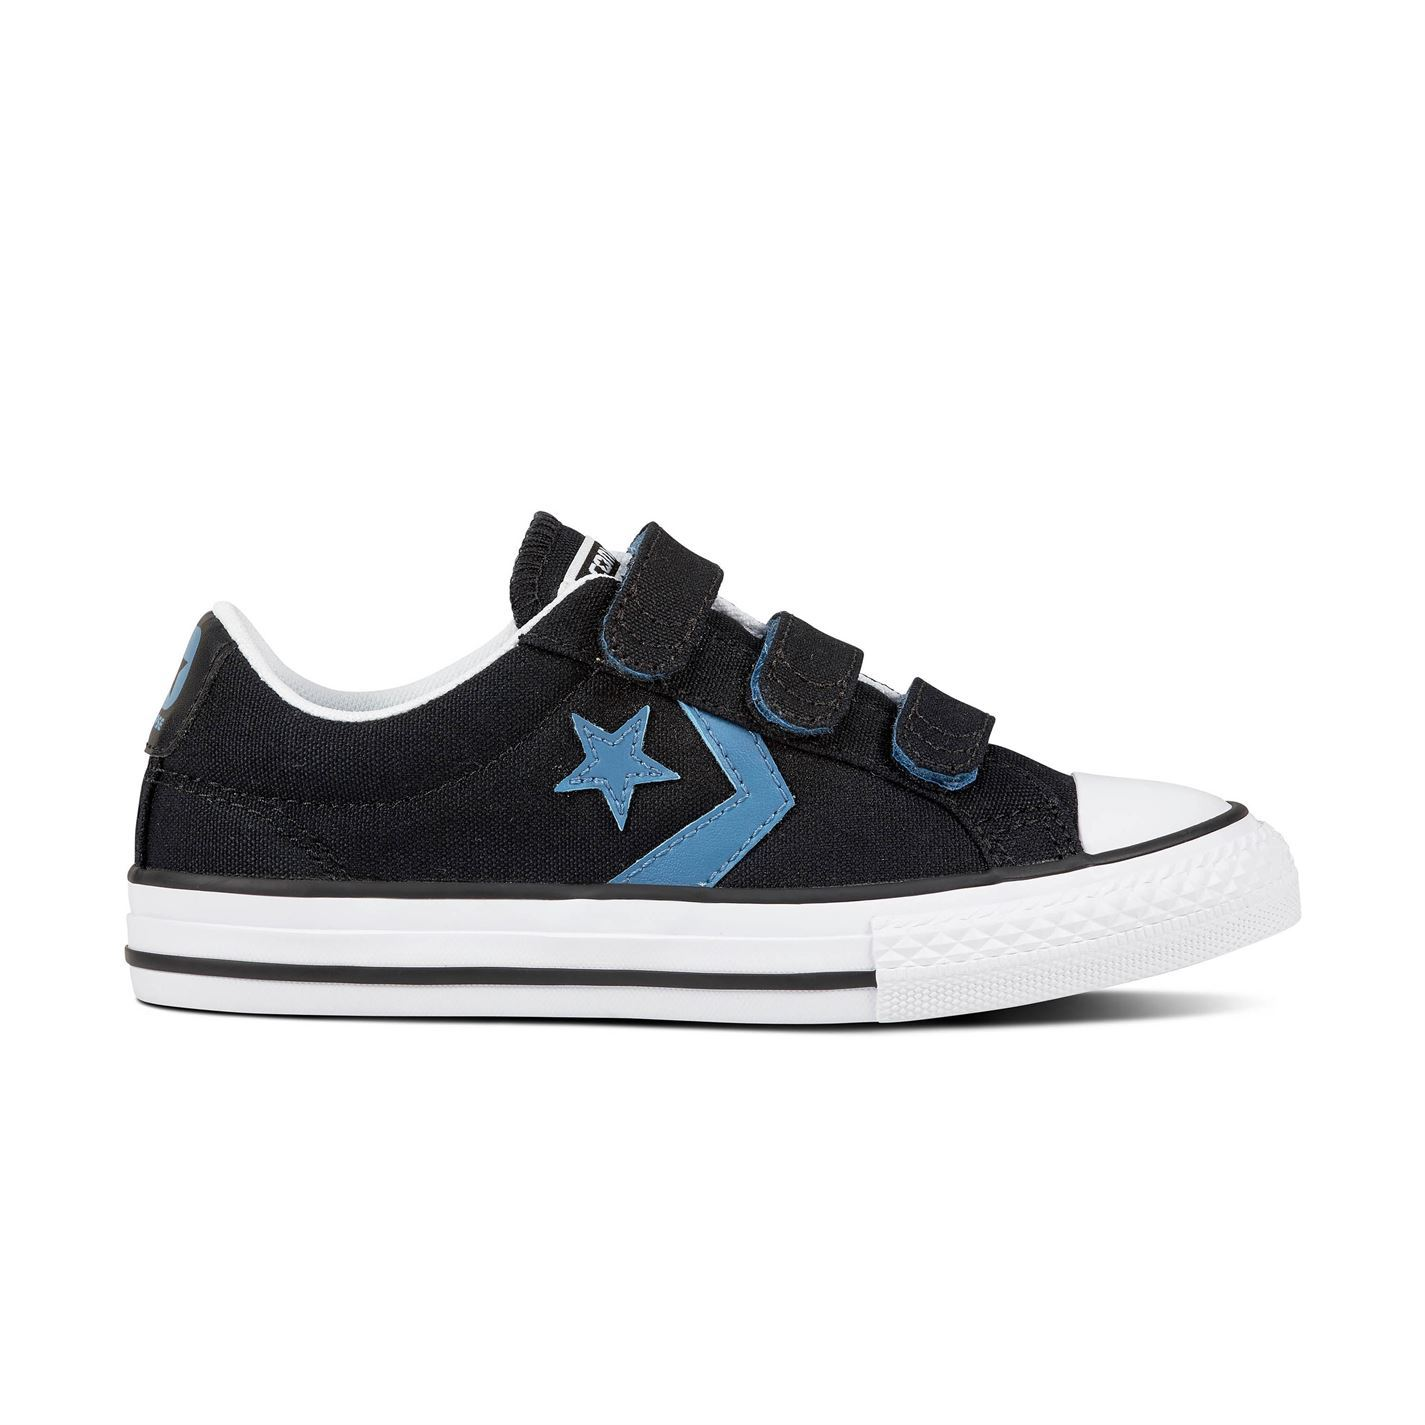 Details about Converse Star Player V Shoes Boys Black Trainers Footwear